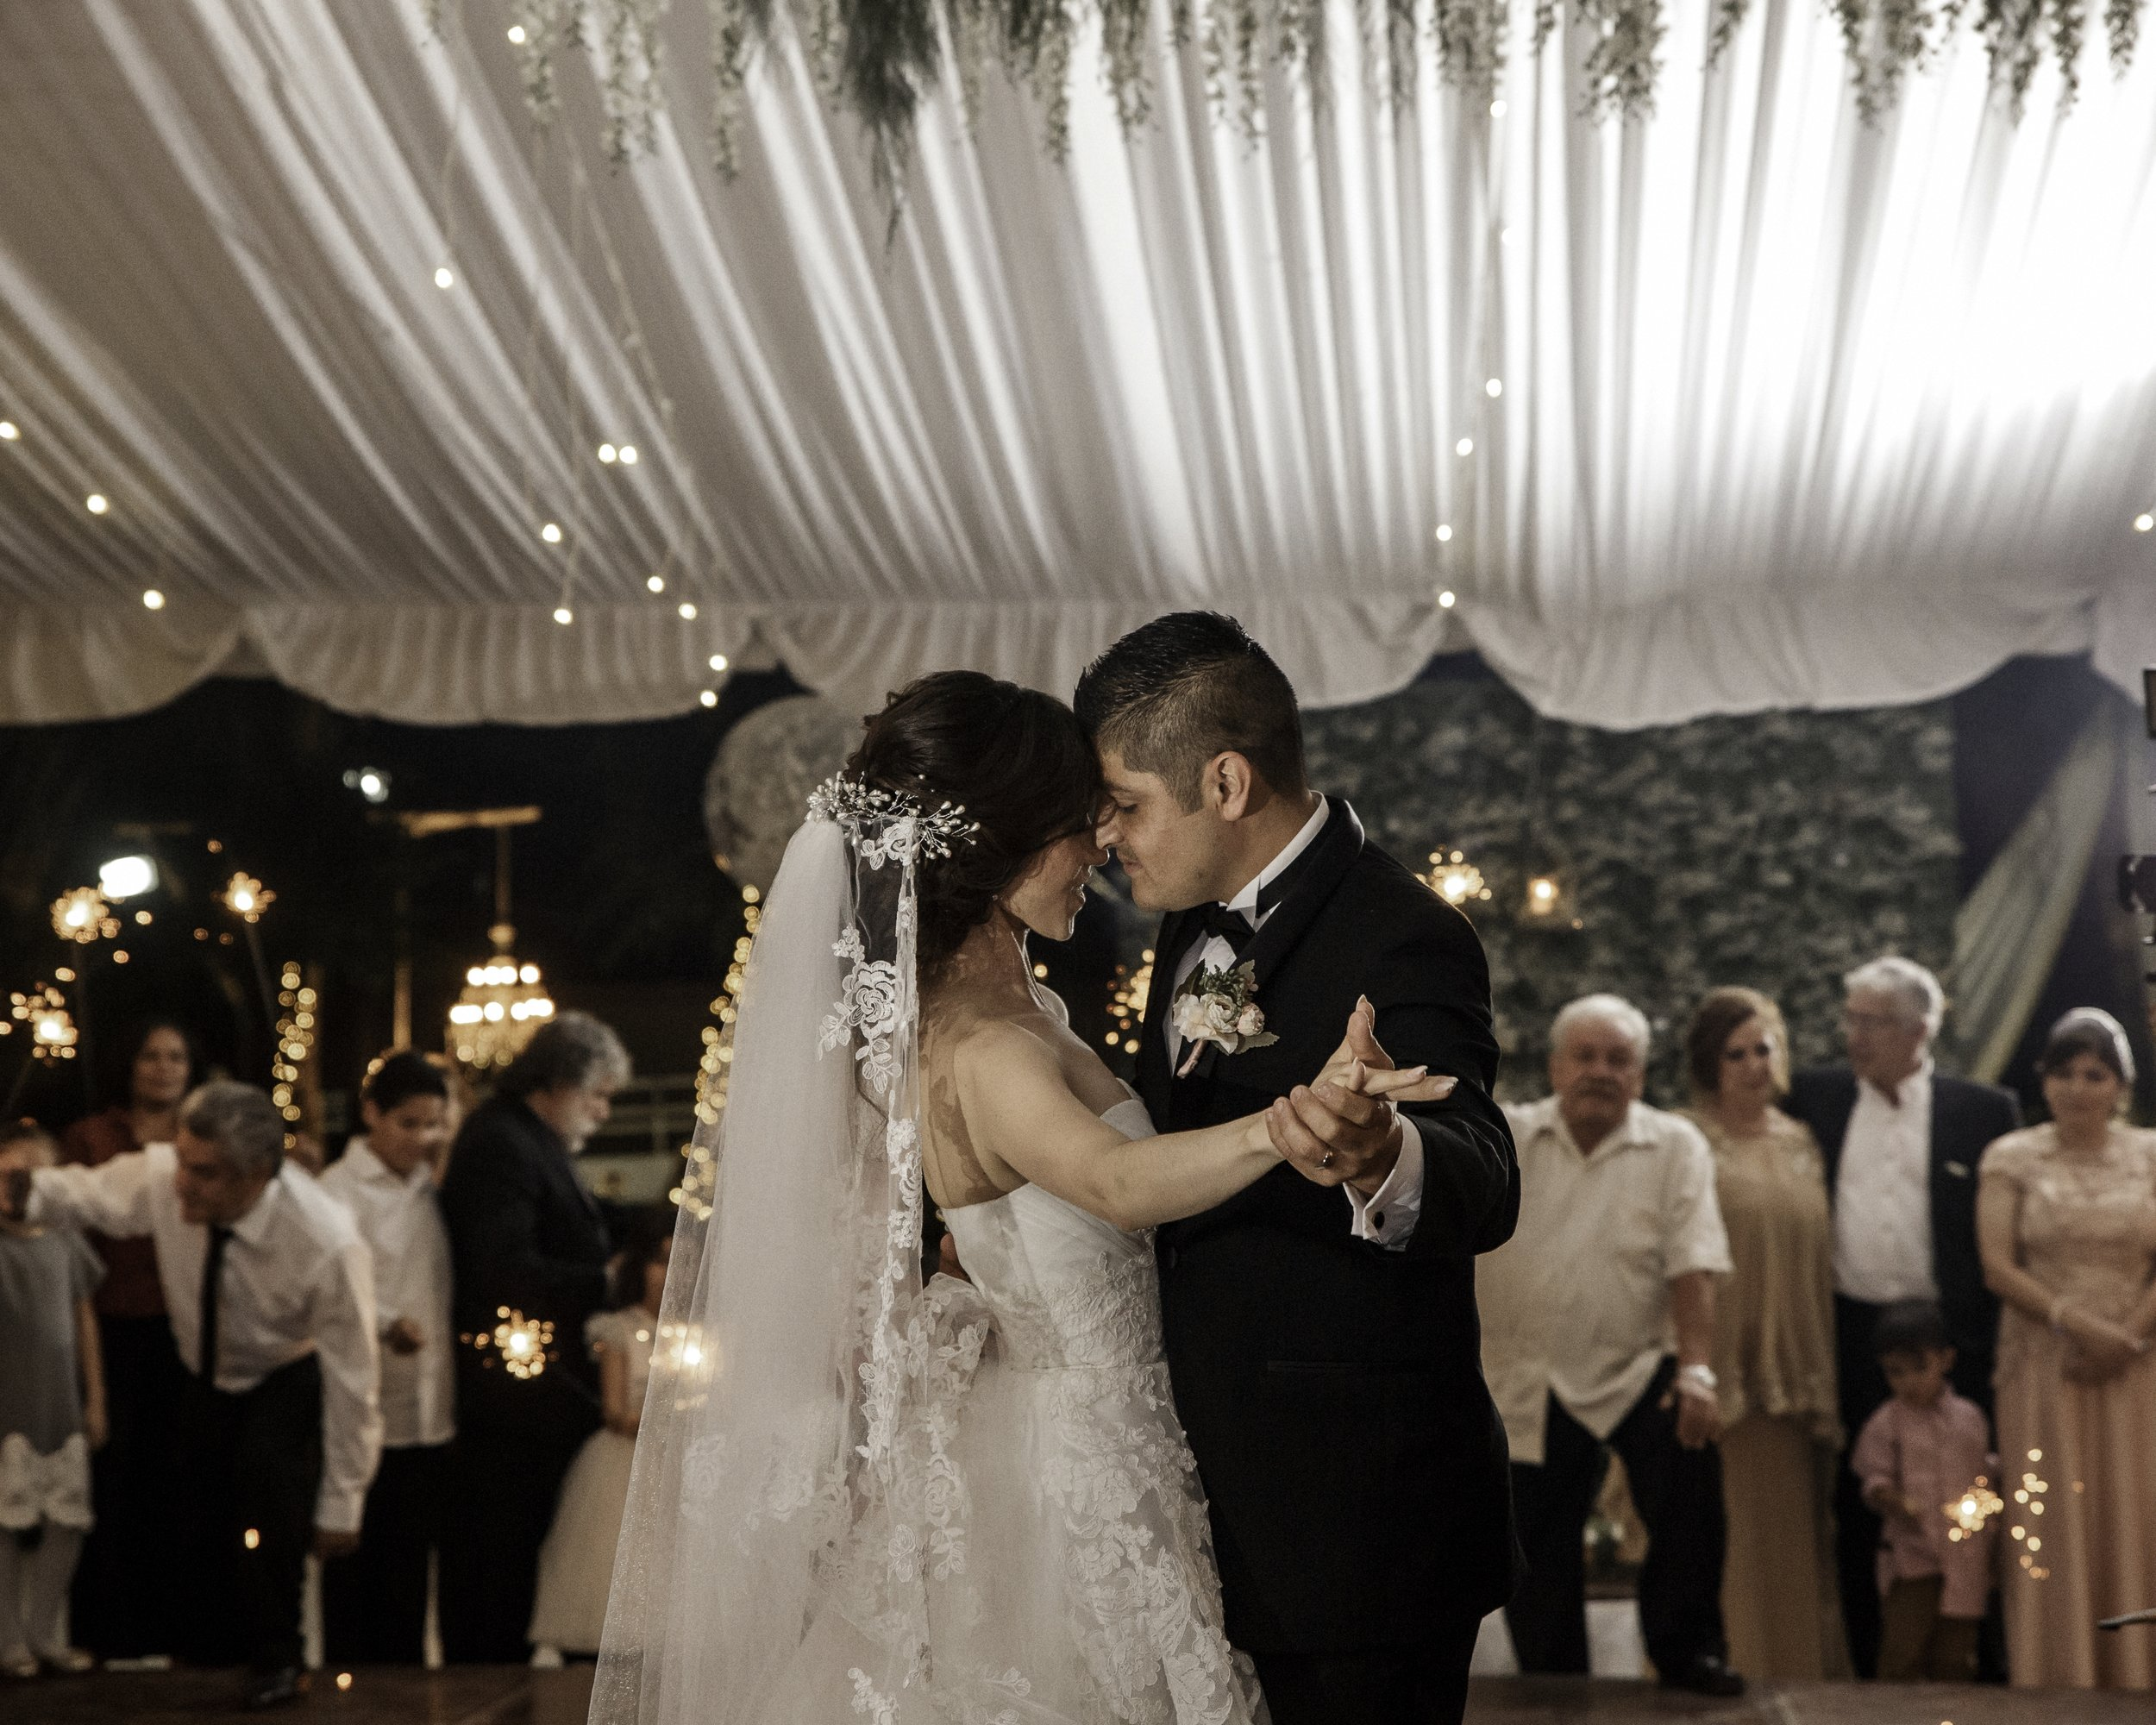 ODEMARIS_DANIEL-122carotida_photographer_boda_wedding.jpg